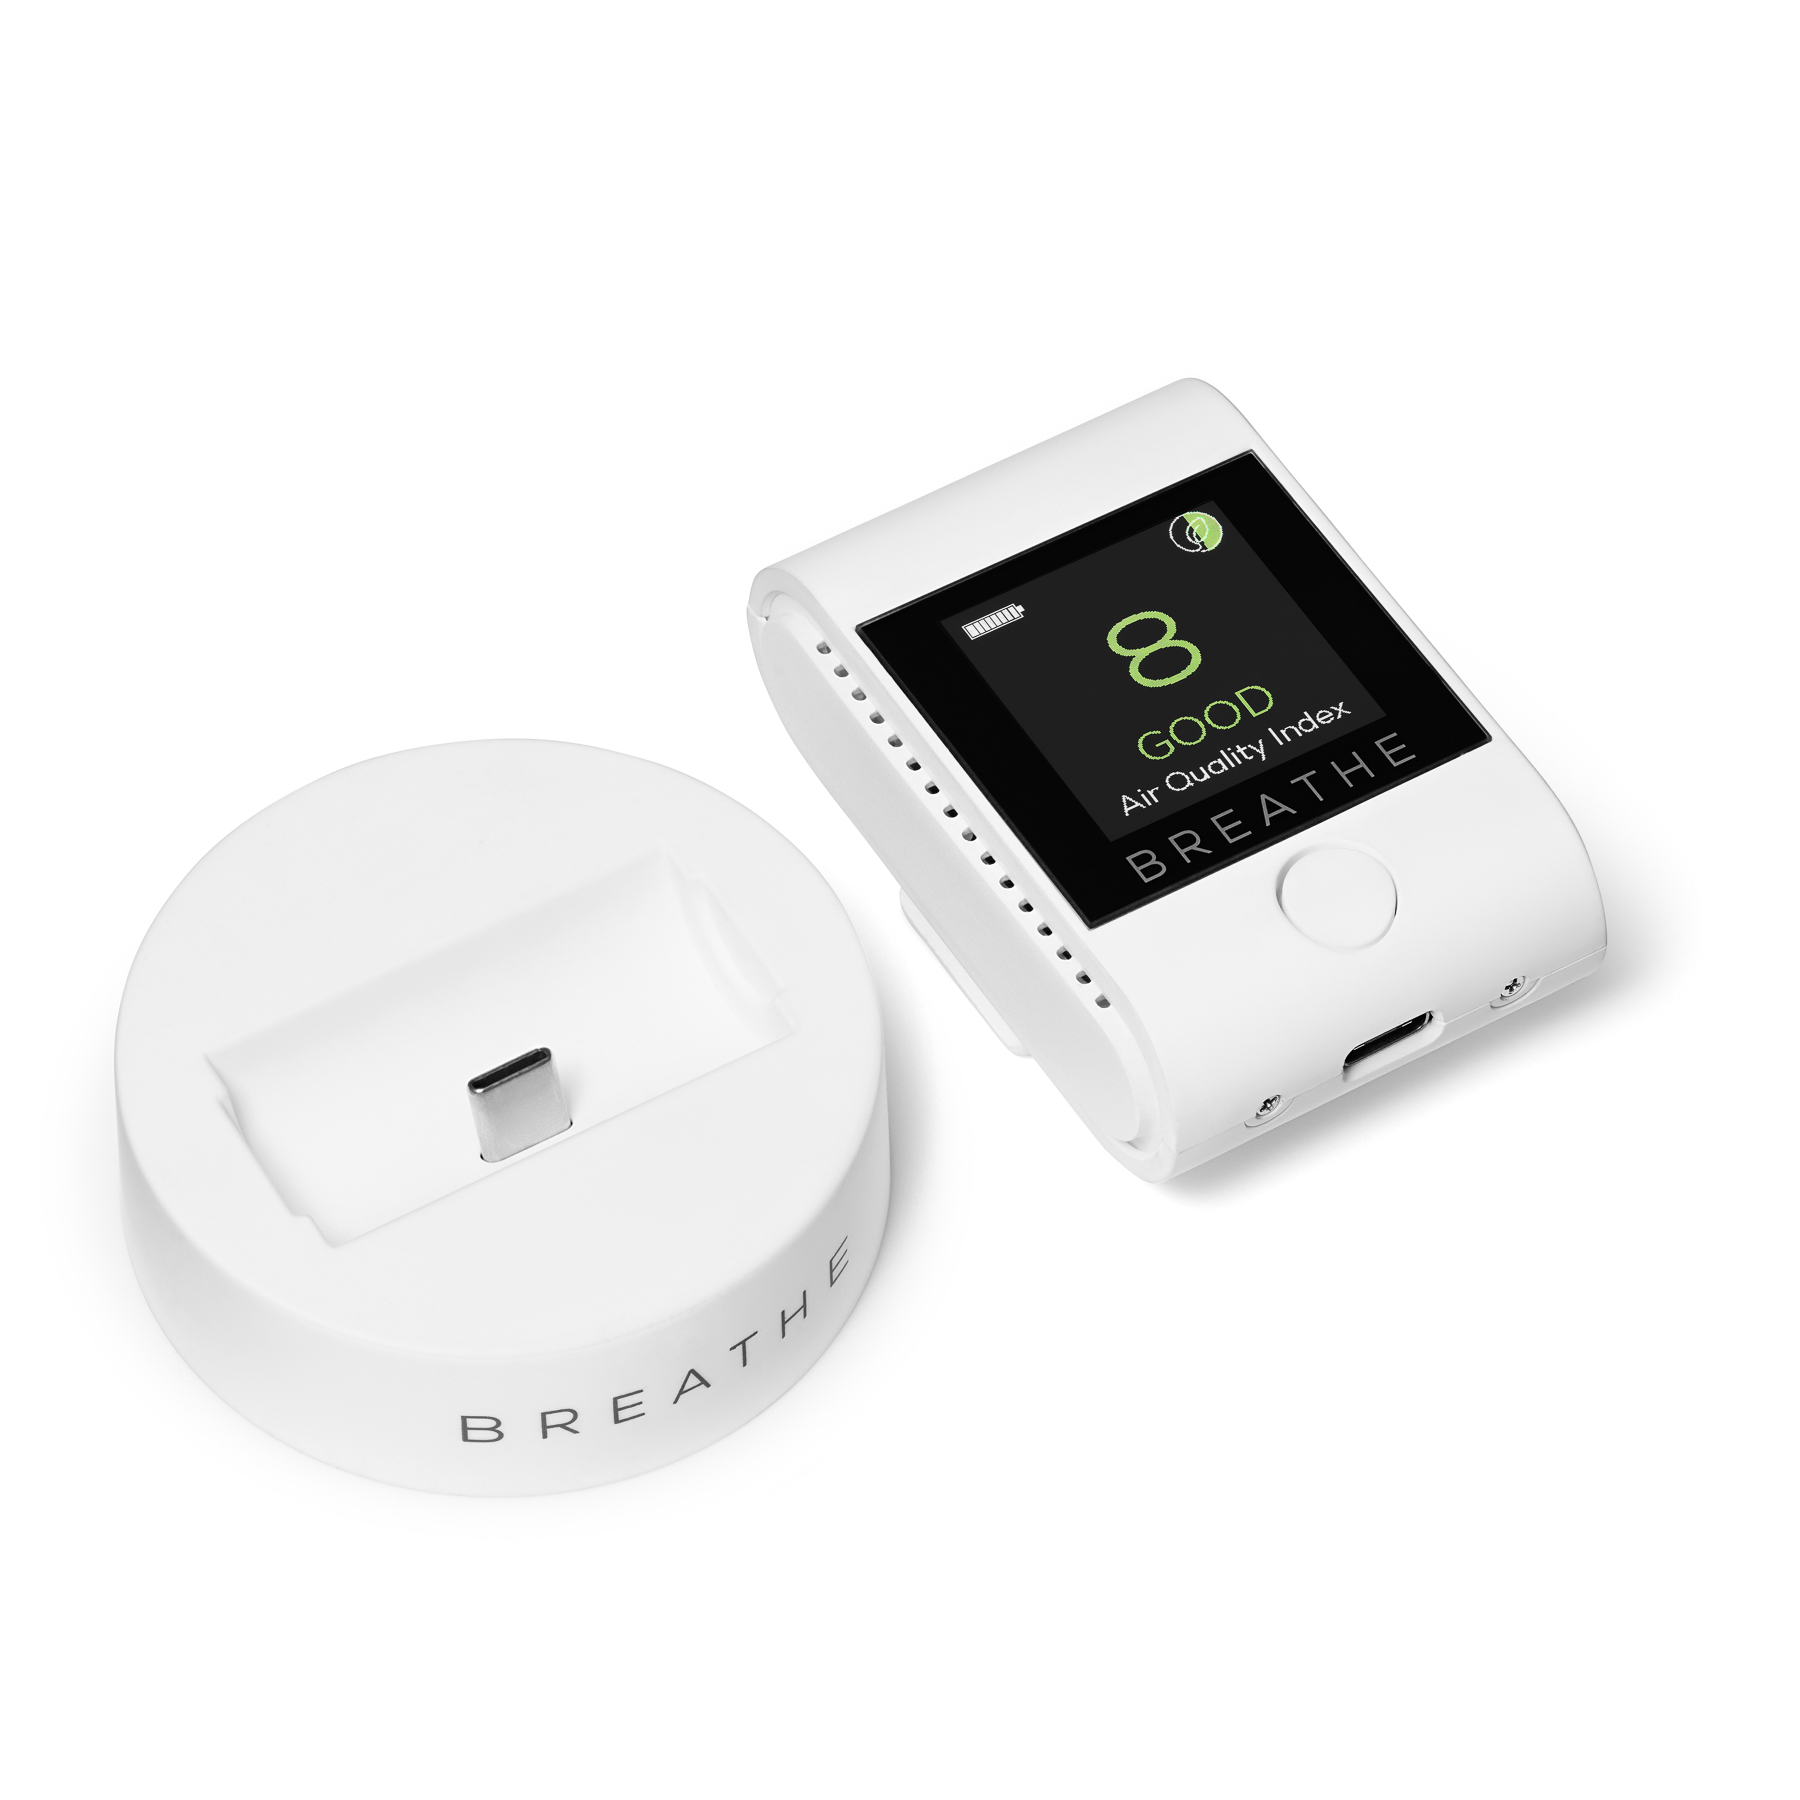 BREATHE Smart air quality monitor undocked.jpg